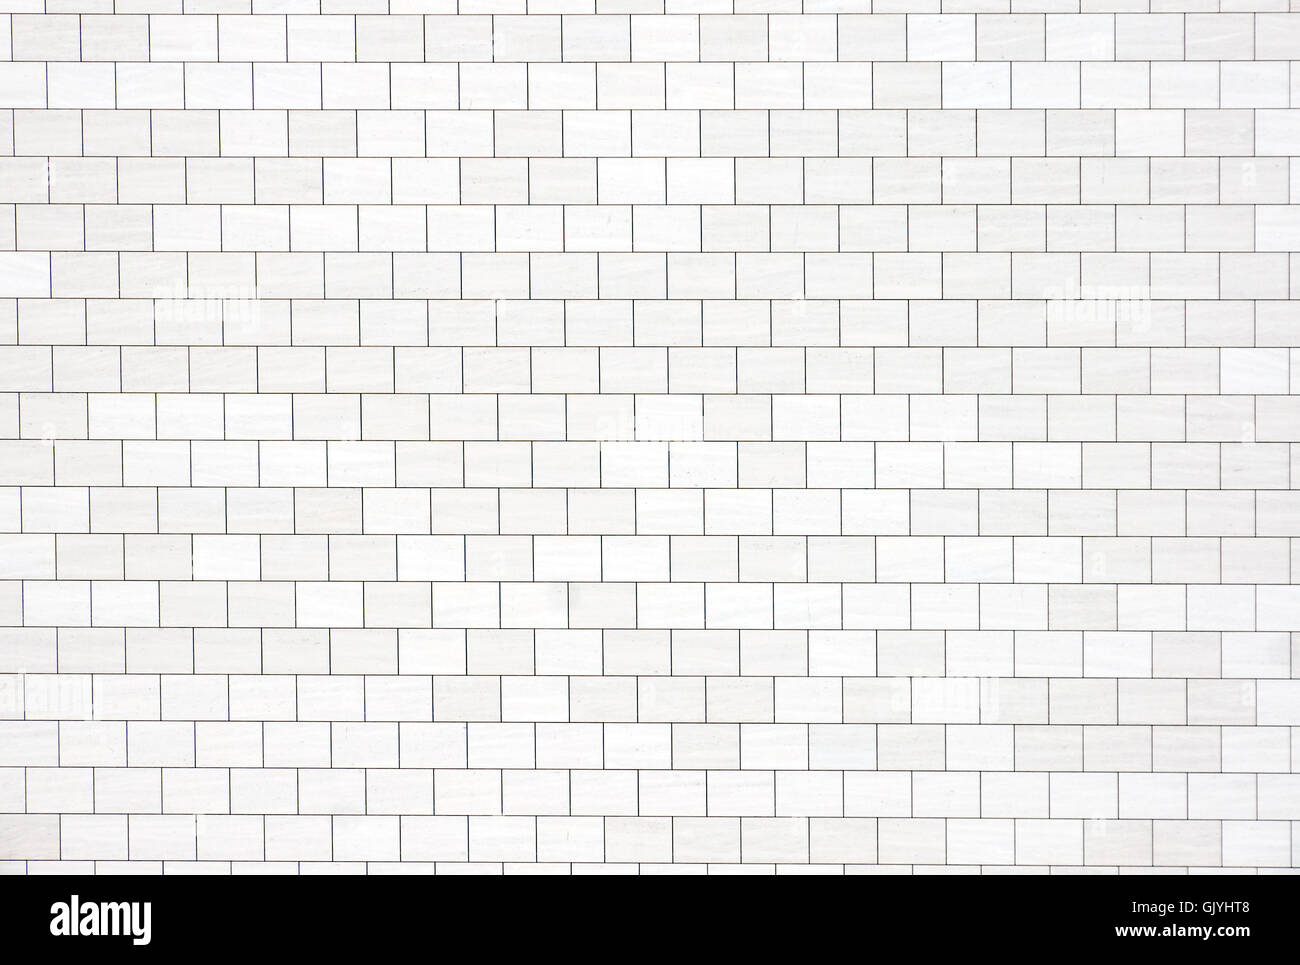 Pink Floyd The Wall High Resolution Stock Photography And Images Alamy